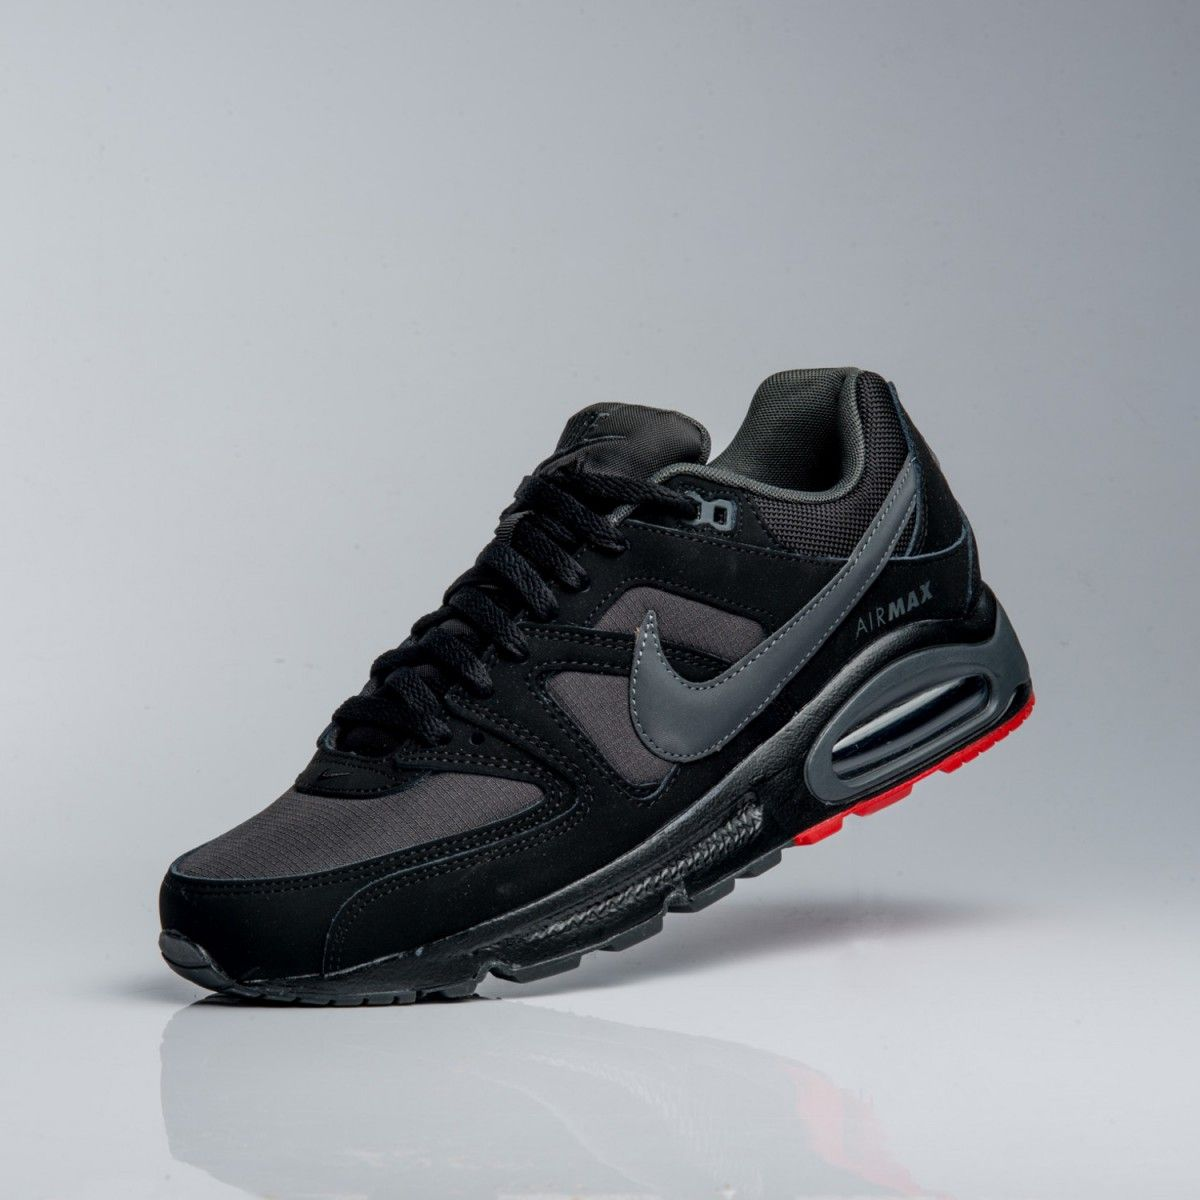 the best attitude 0259a 7ba1b ZAPATILLAS NIKE AIR MAX COMMAND - Moda - Zapatillas - Hombre